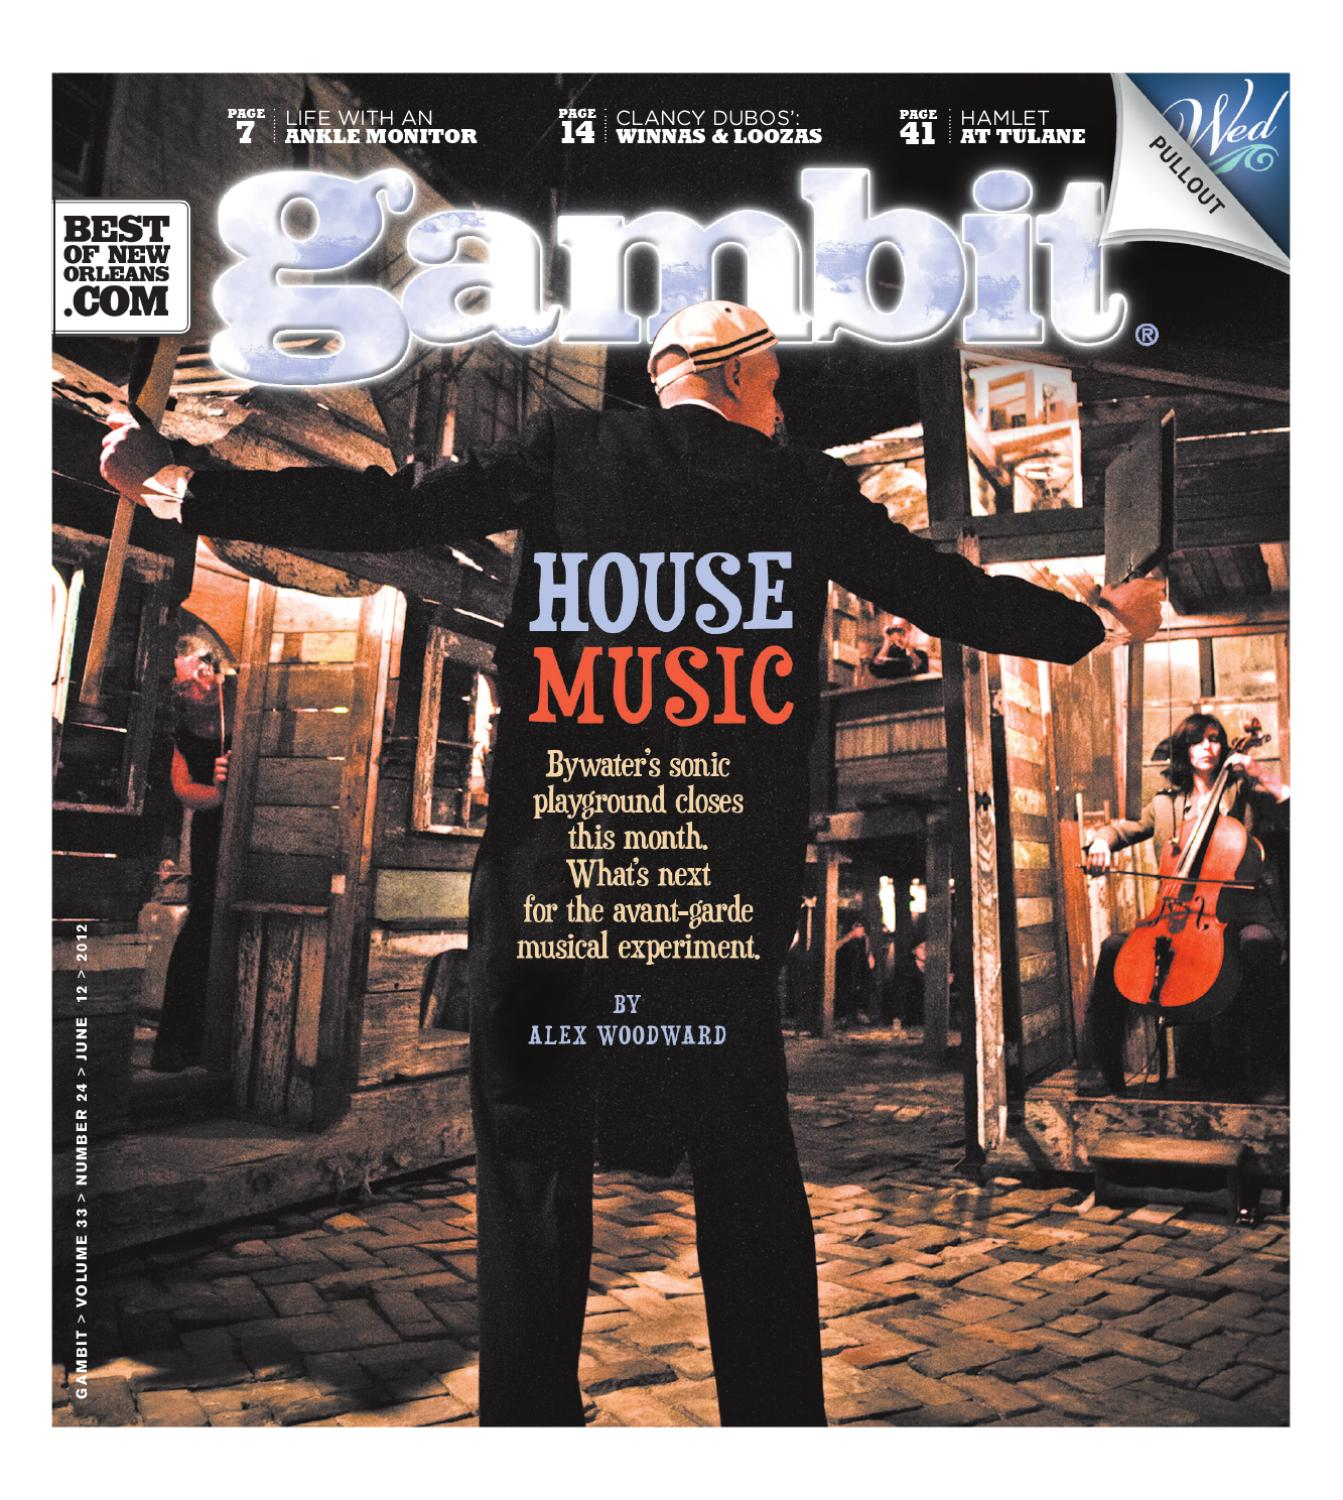 Gambit June 12, 2012 by Gambit New Orleans - issuu